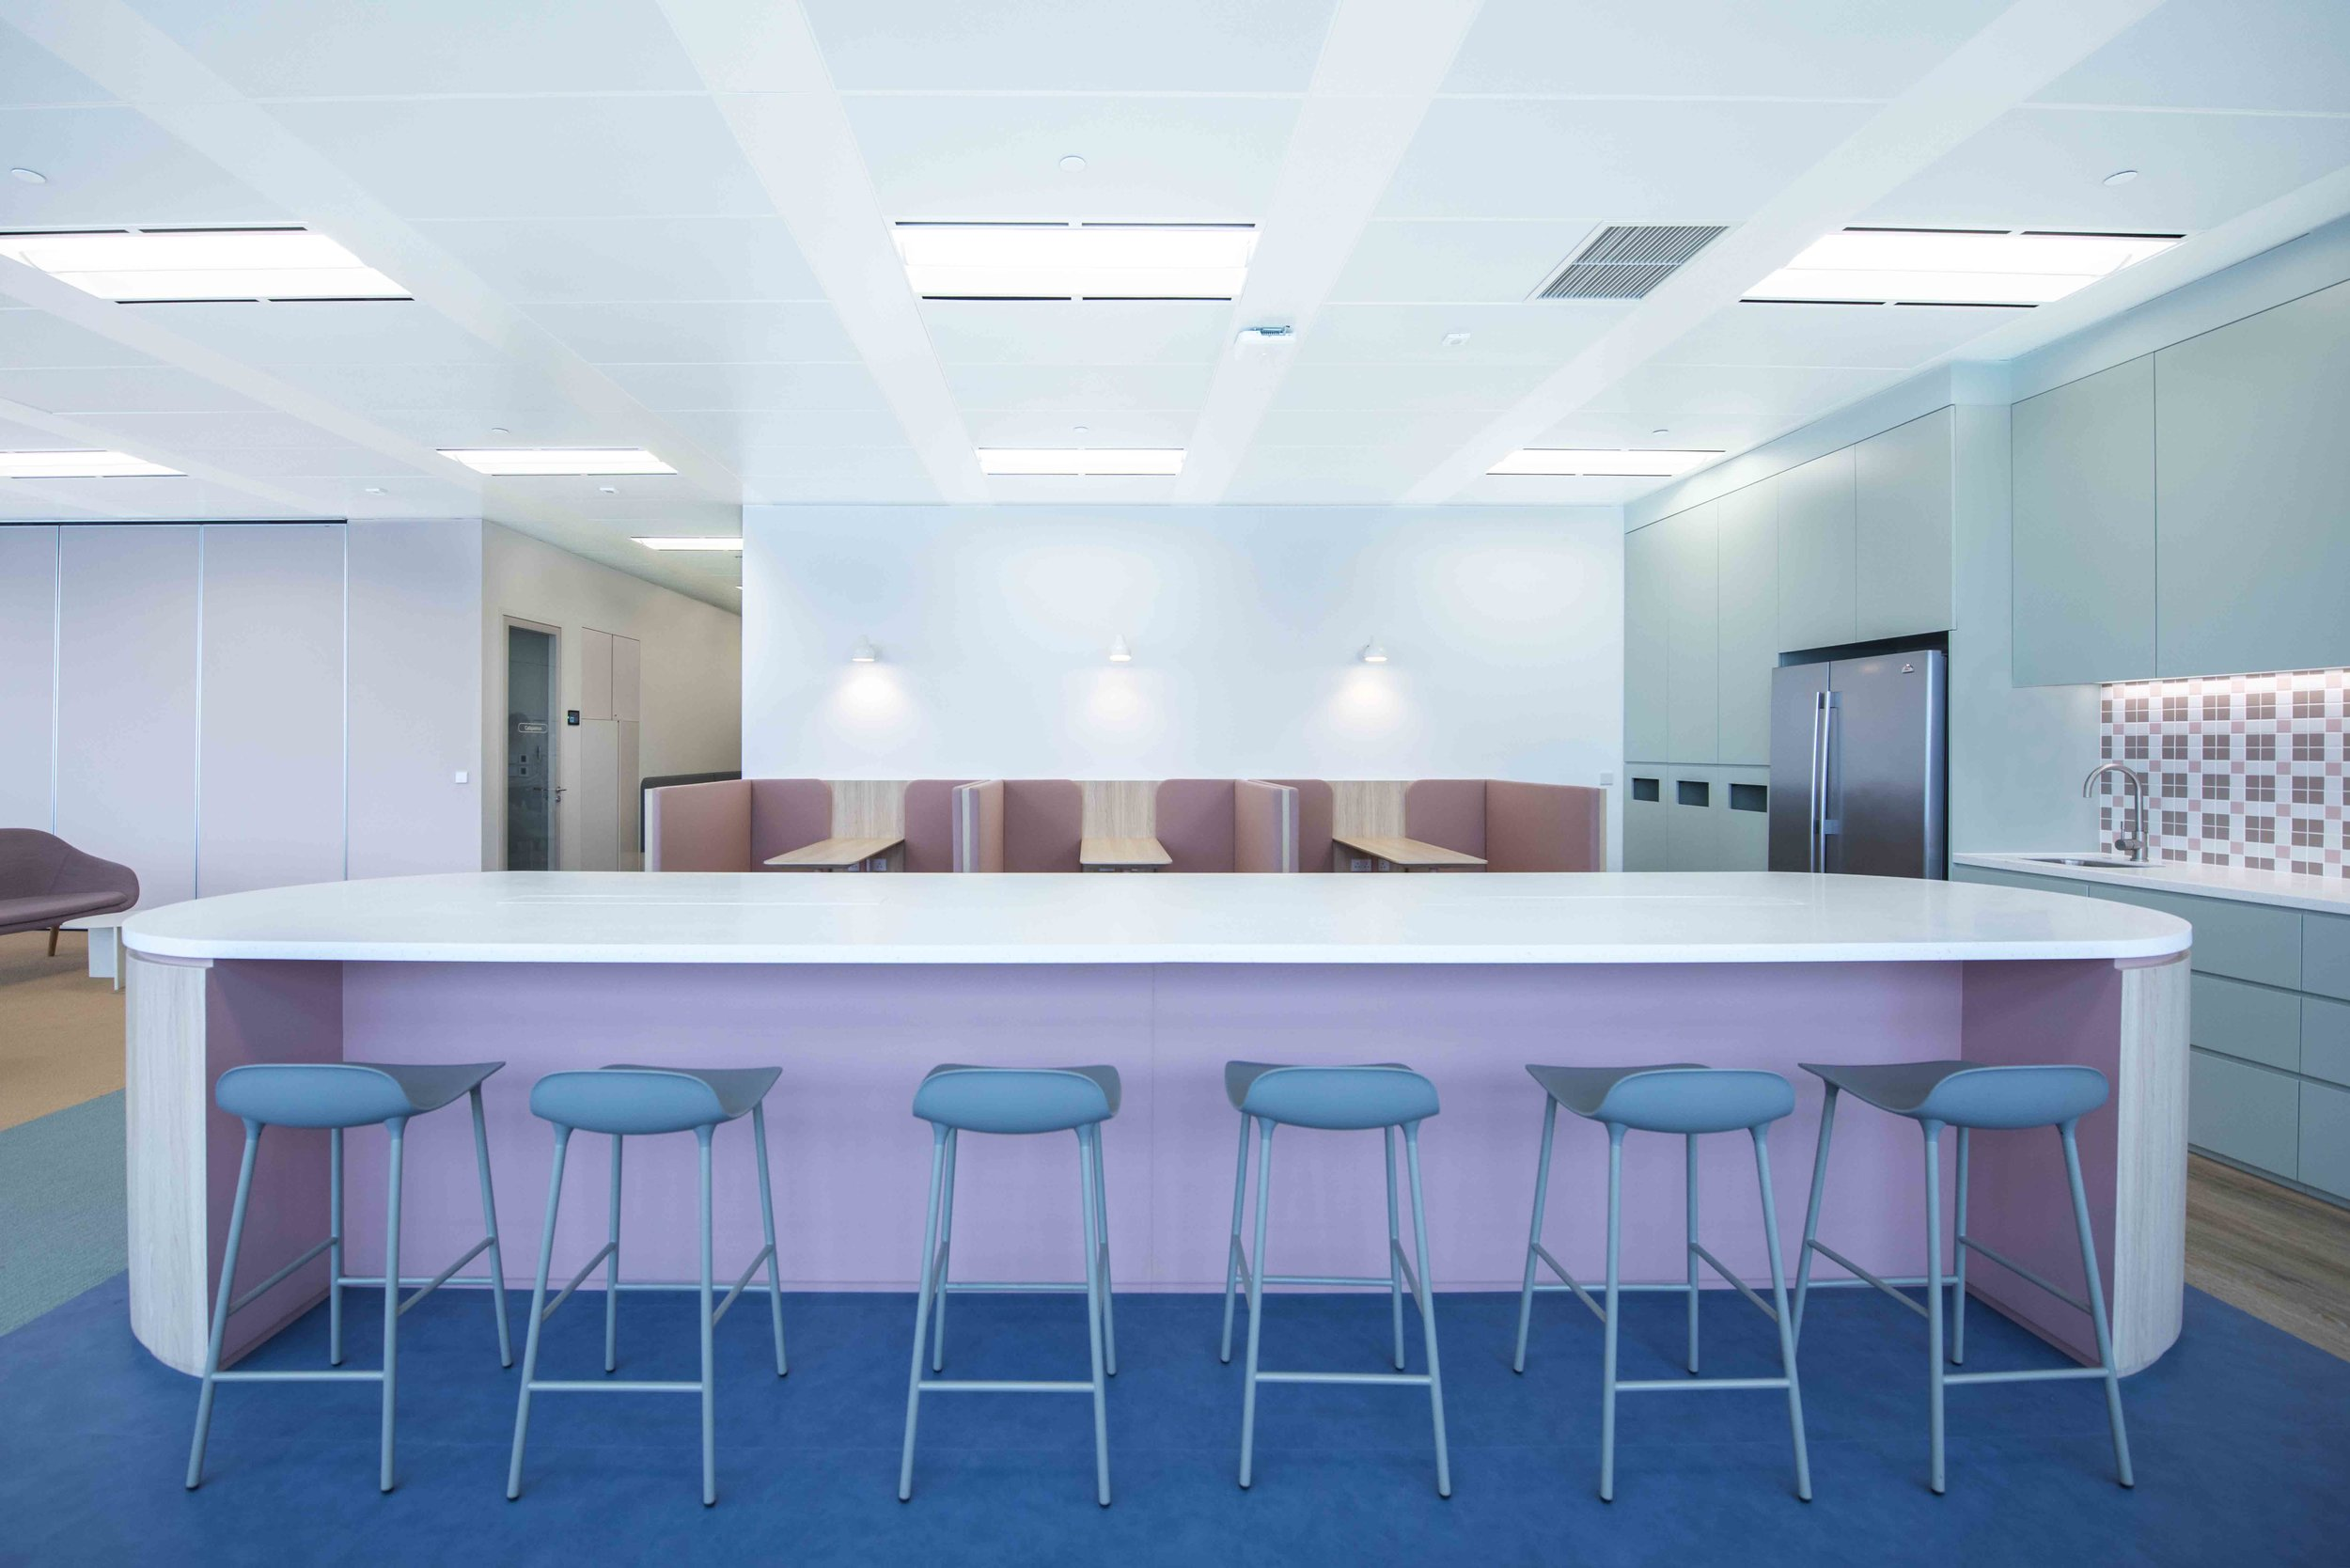 The pantry space is designed as the social heart of the workplace, where employees can socialise with each other for informal meetings using the central island table, the diner style carts, as well as a 30 metres long counter along the panoramic windows that faces the Victoria Harbour.